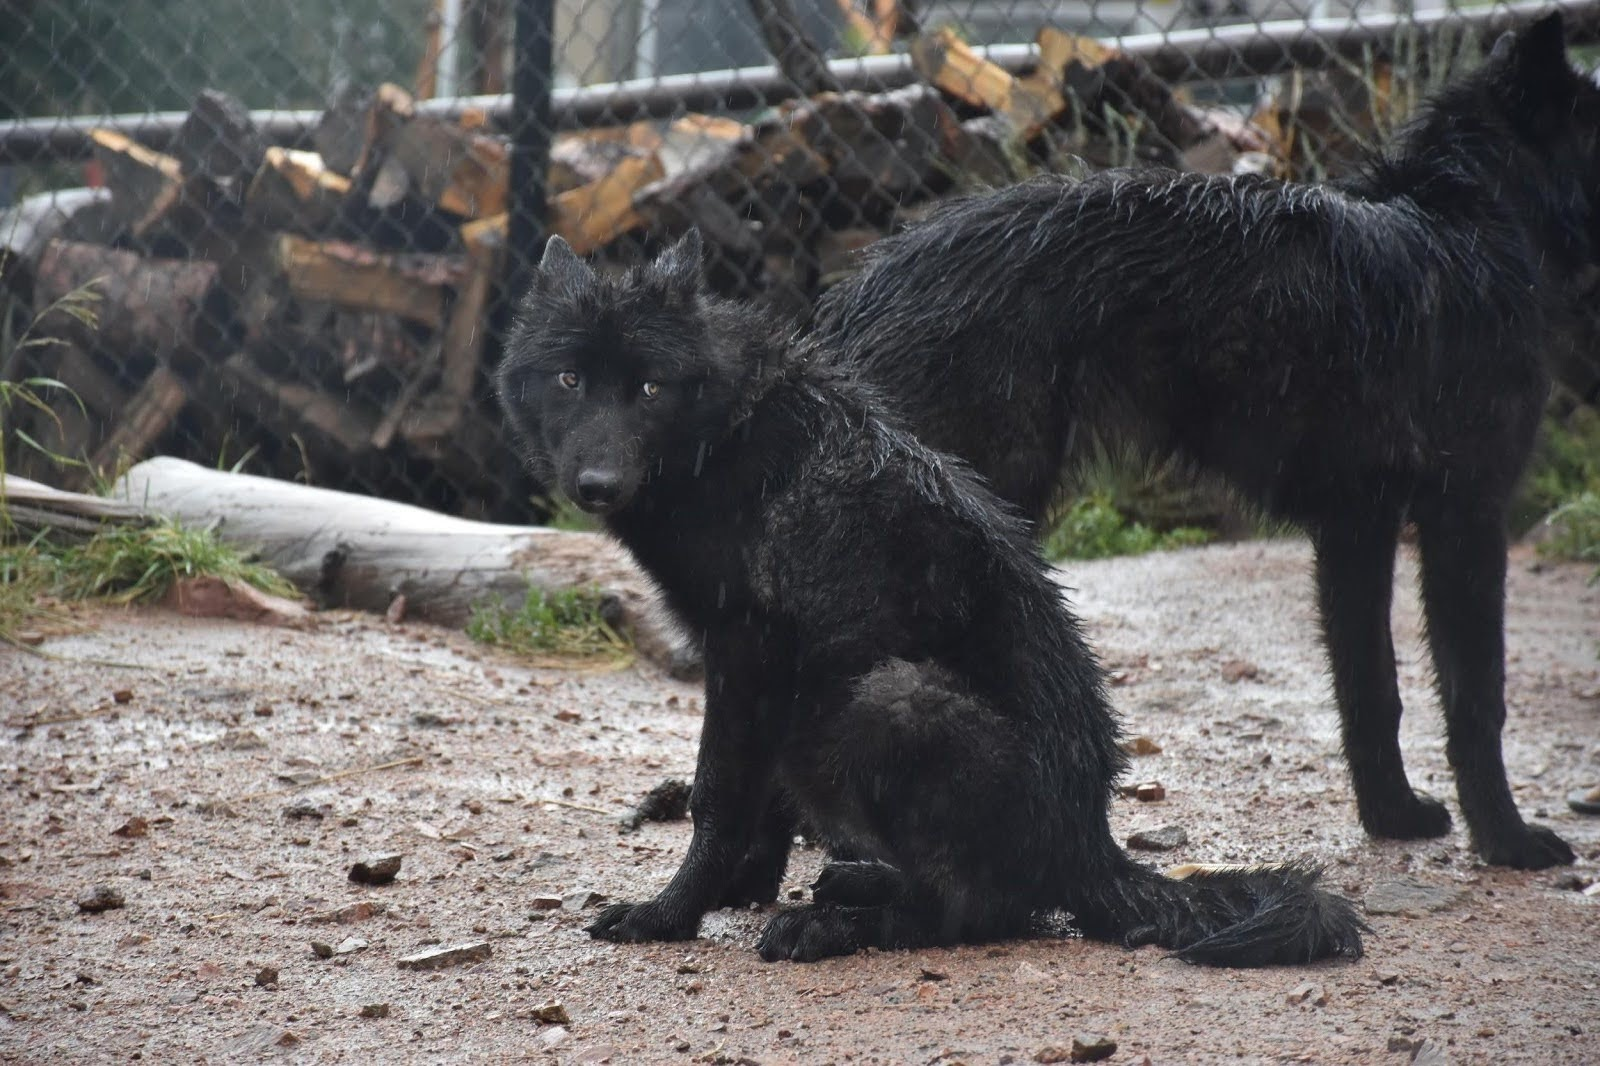 A black wolf pup looks cautiously off to the side as another black wolf stands behind her, face off-screen.